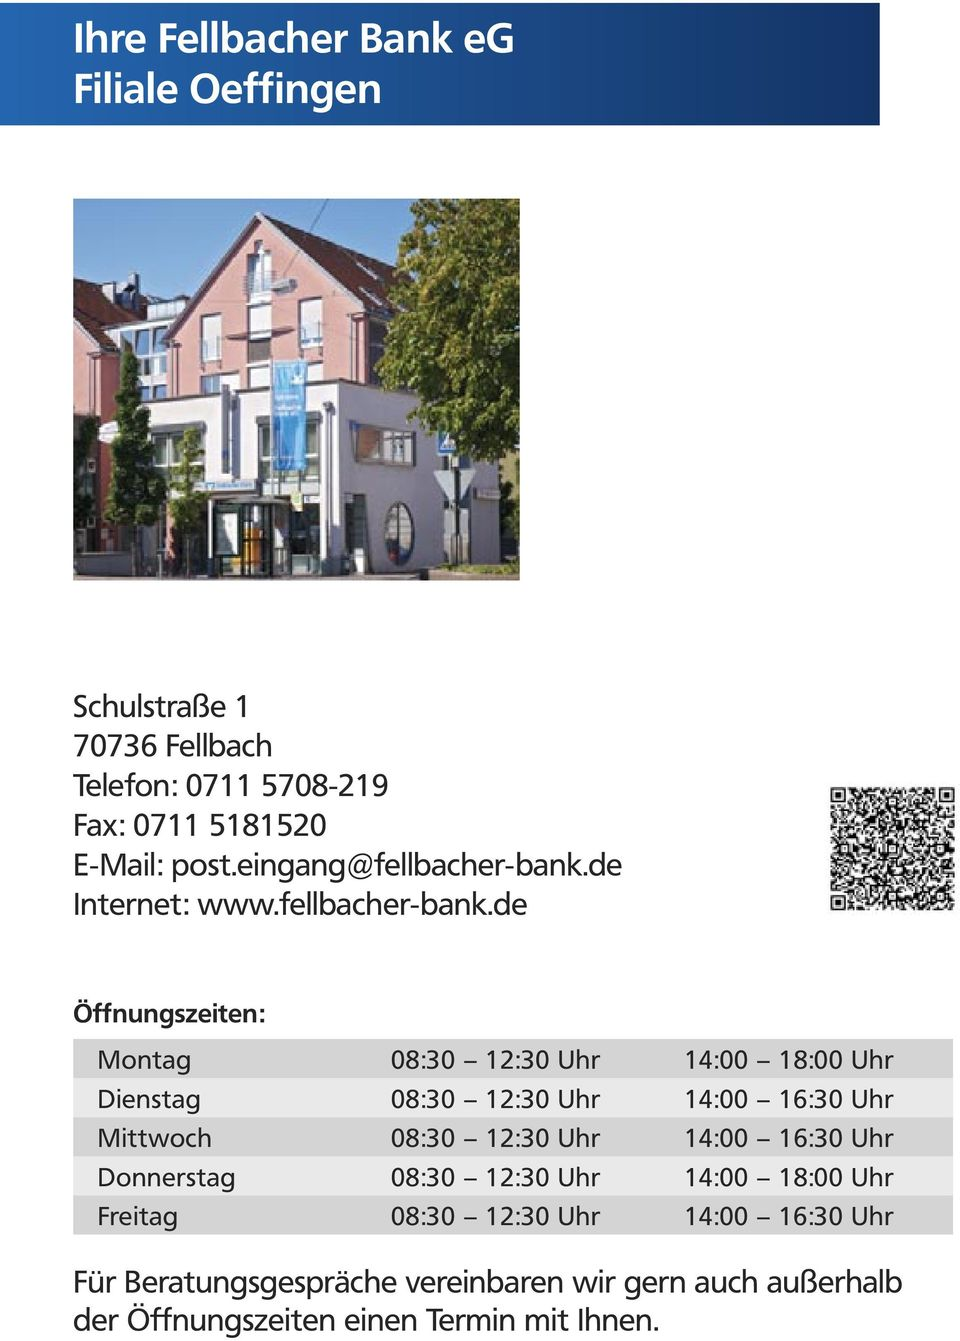 de Internet: www.fellbacher-bank.